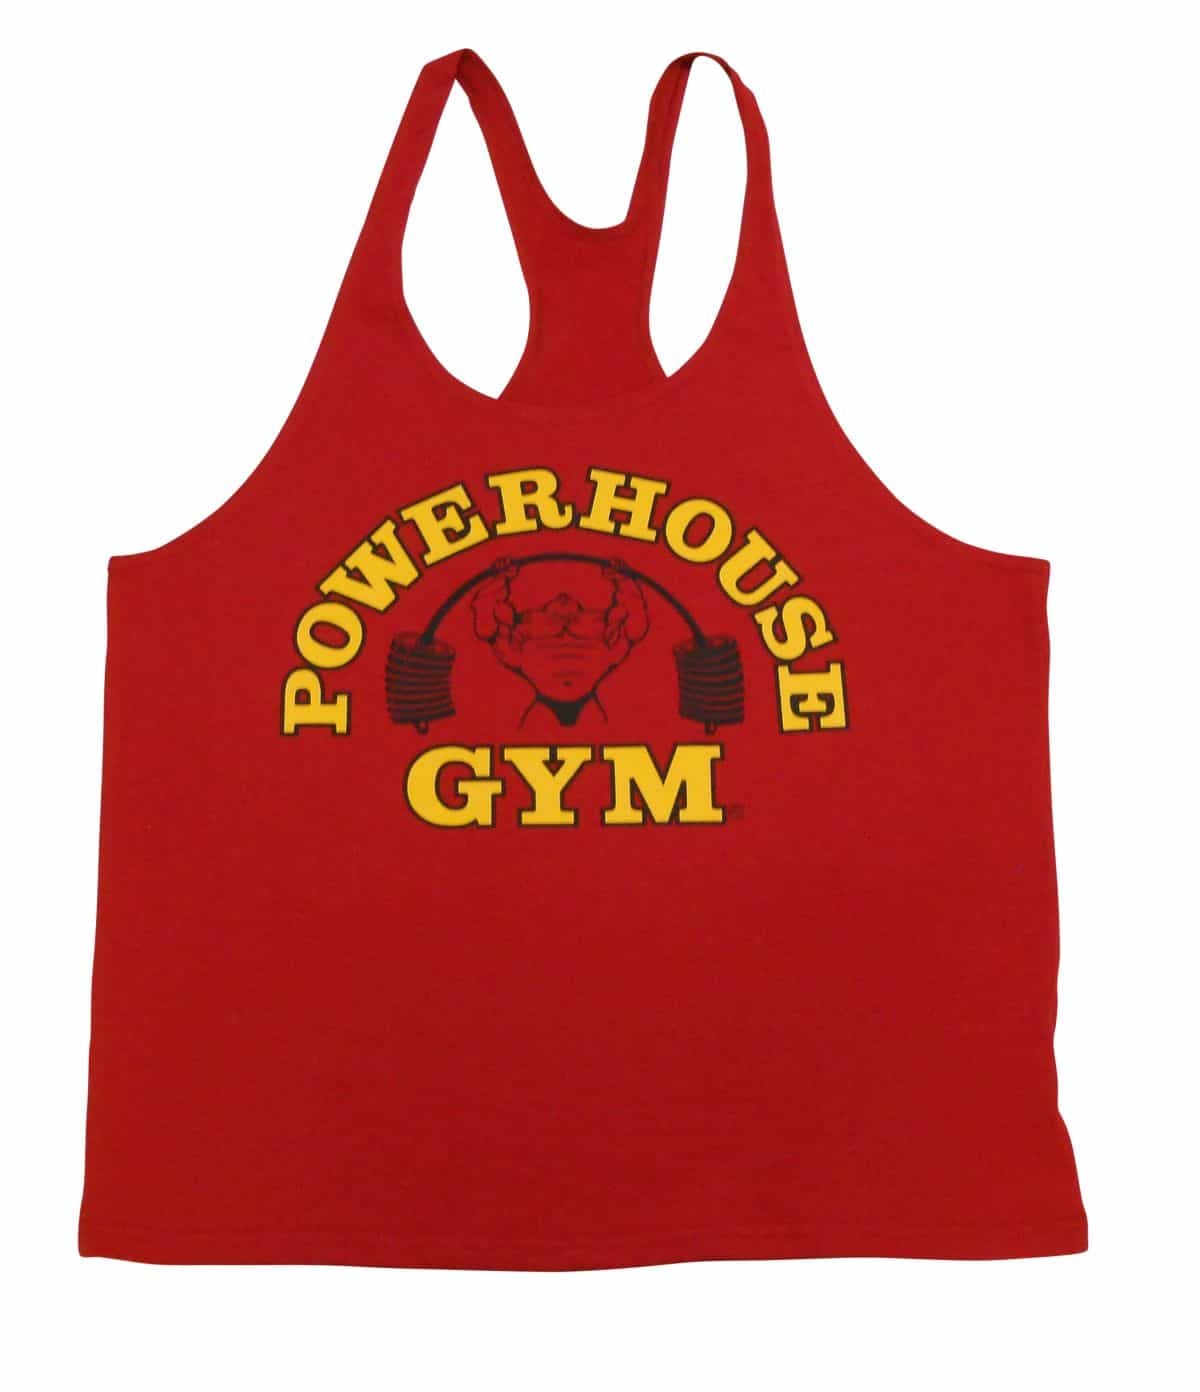 powerhouse-gym-stringer-tank-top-1